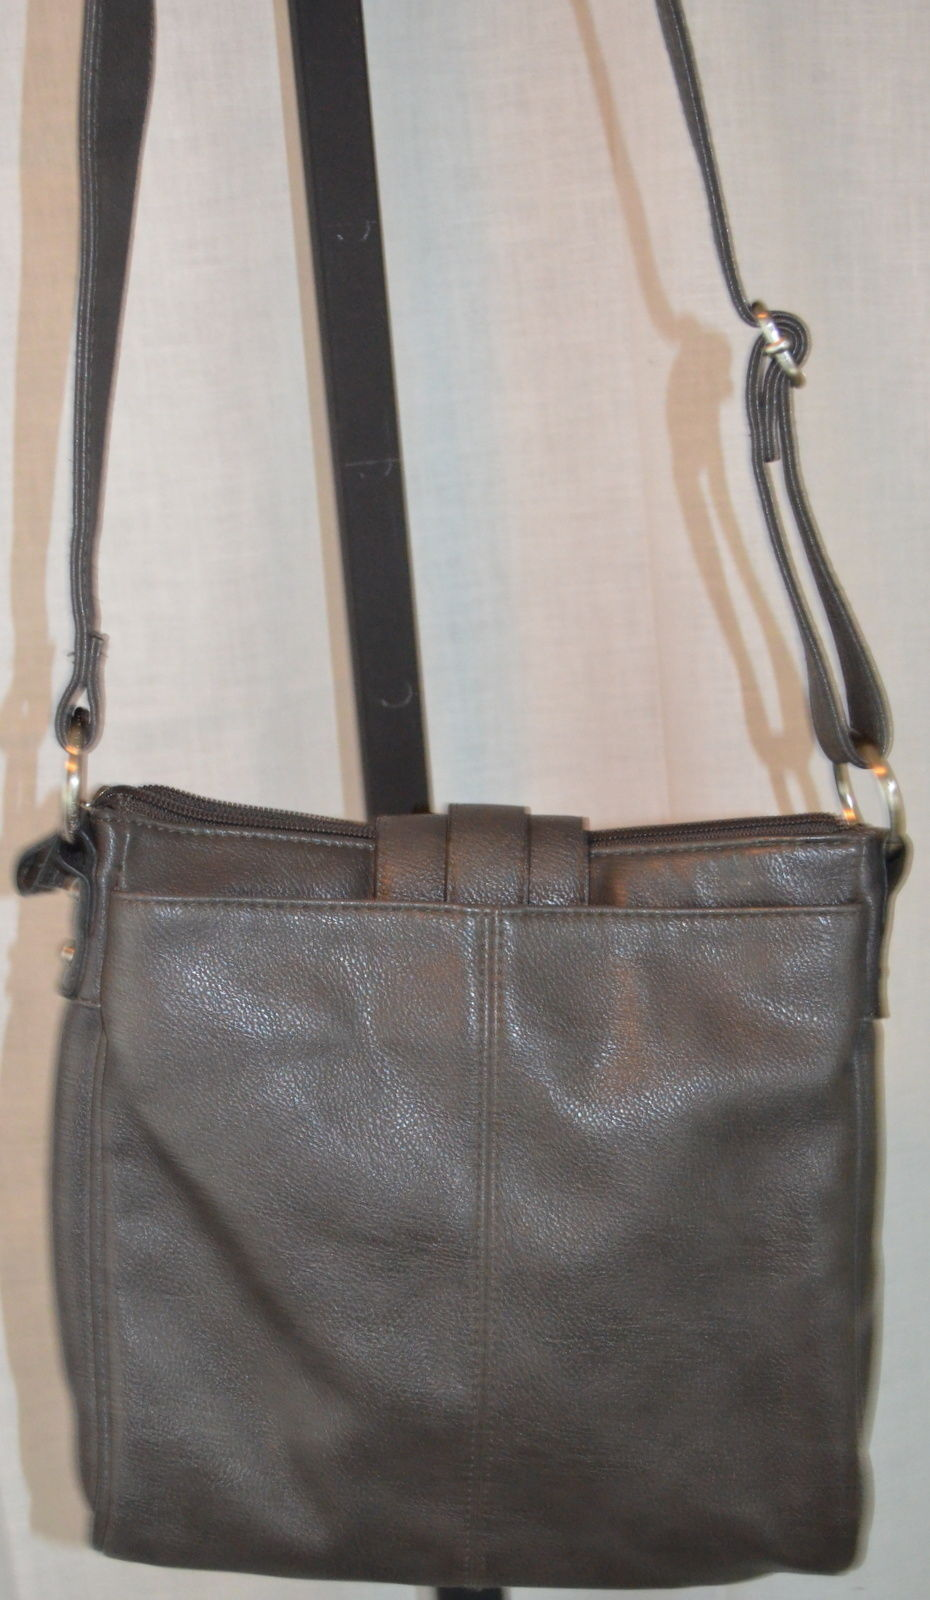 Merona Black Medium Shopper Tote Handbag and 10 similar items 91b9522f6e830